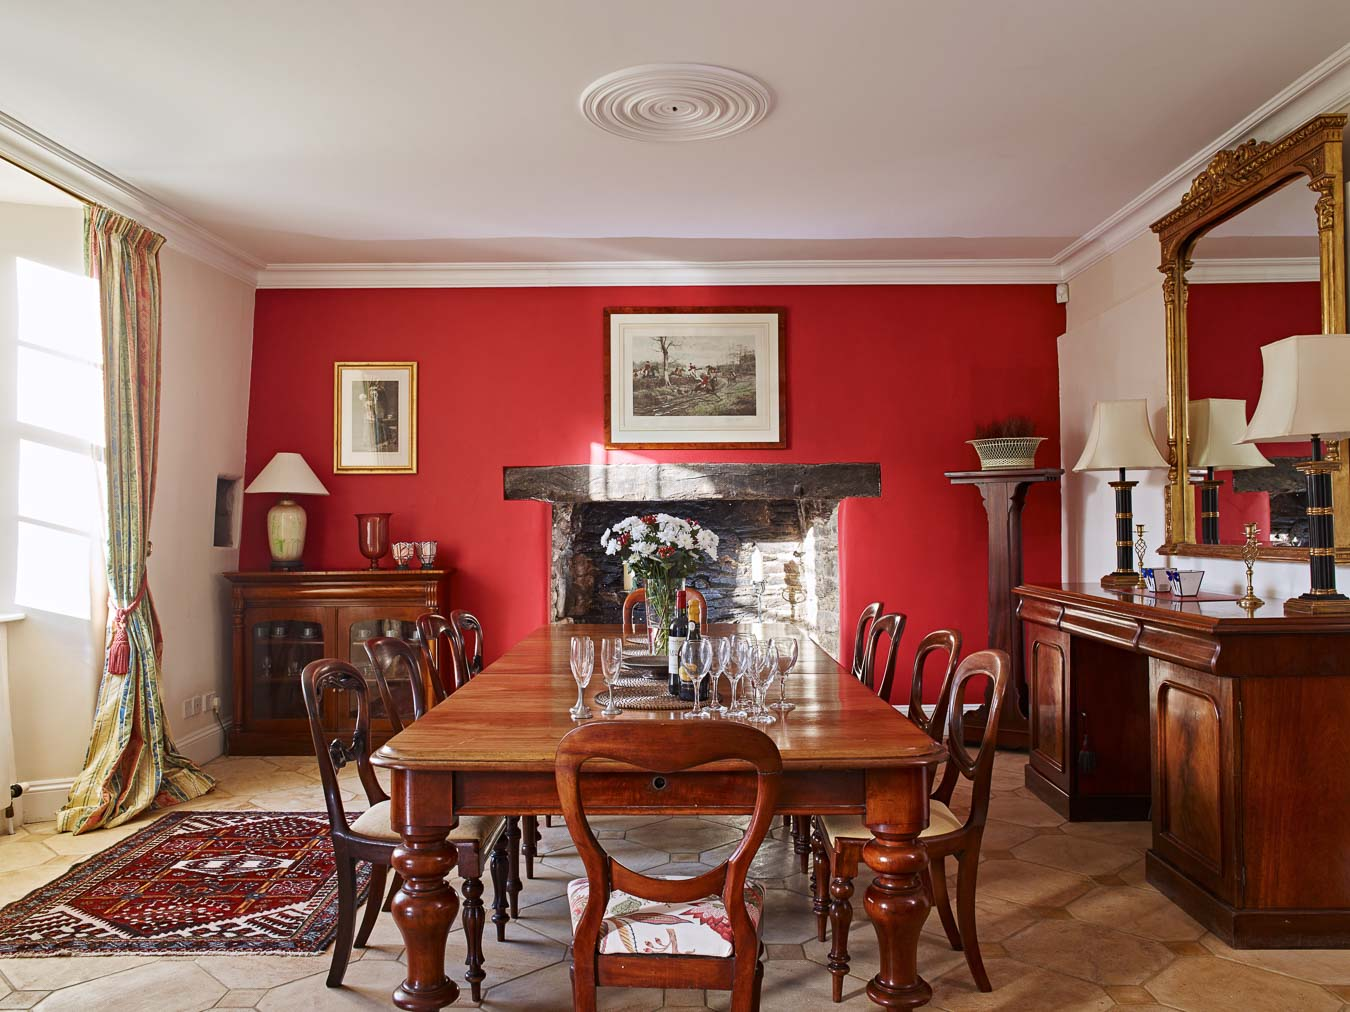 The grand Red dining room of Flear House at Flear Farm.